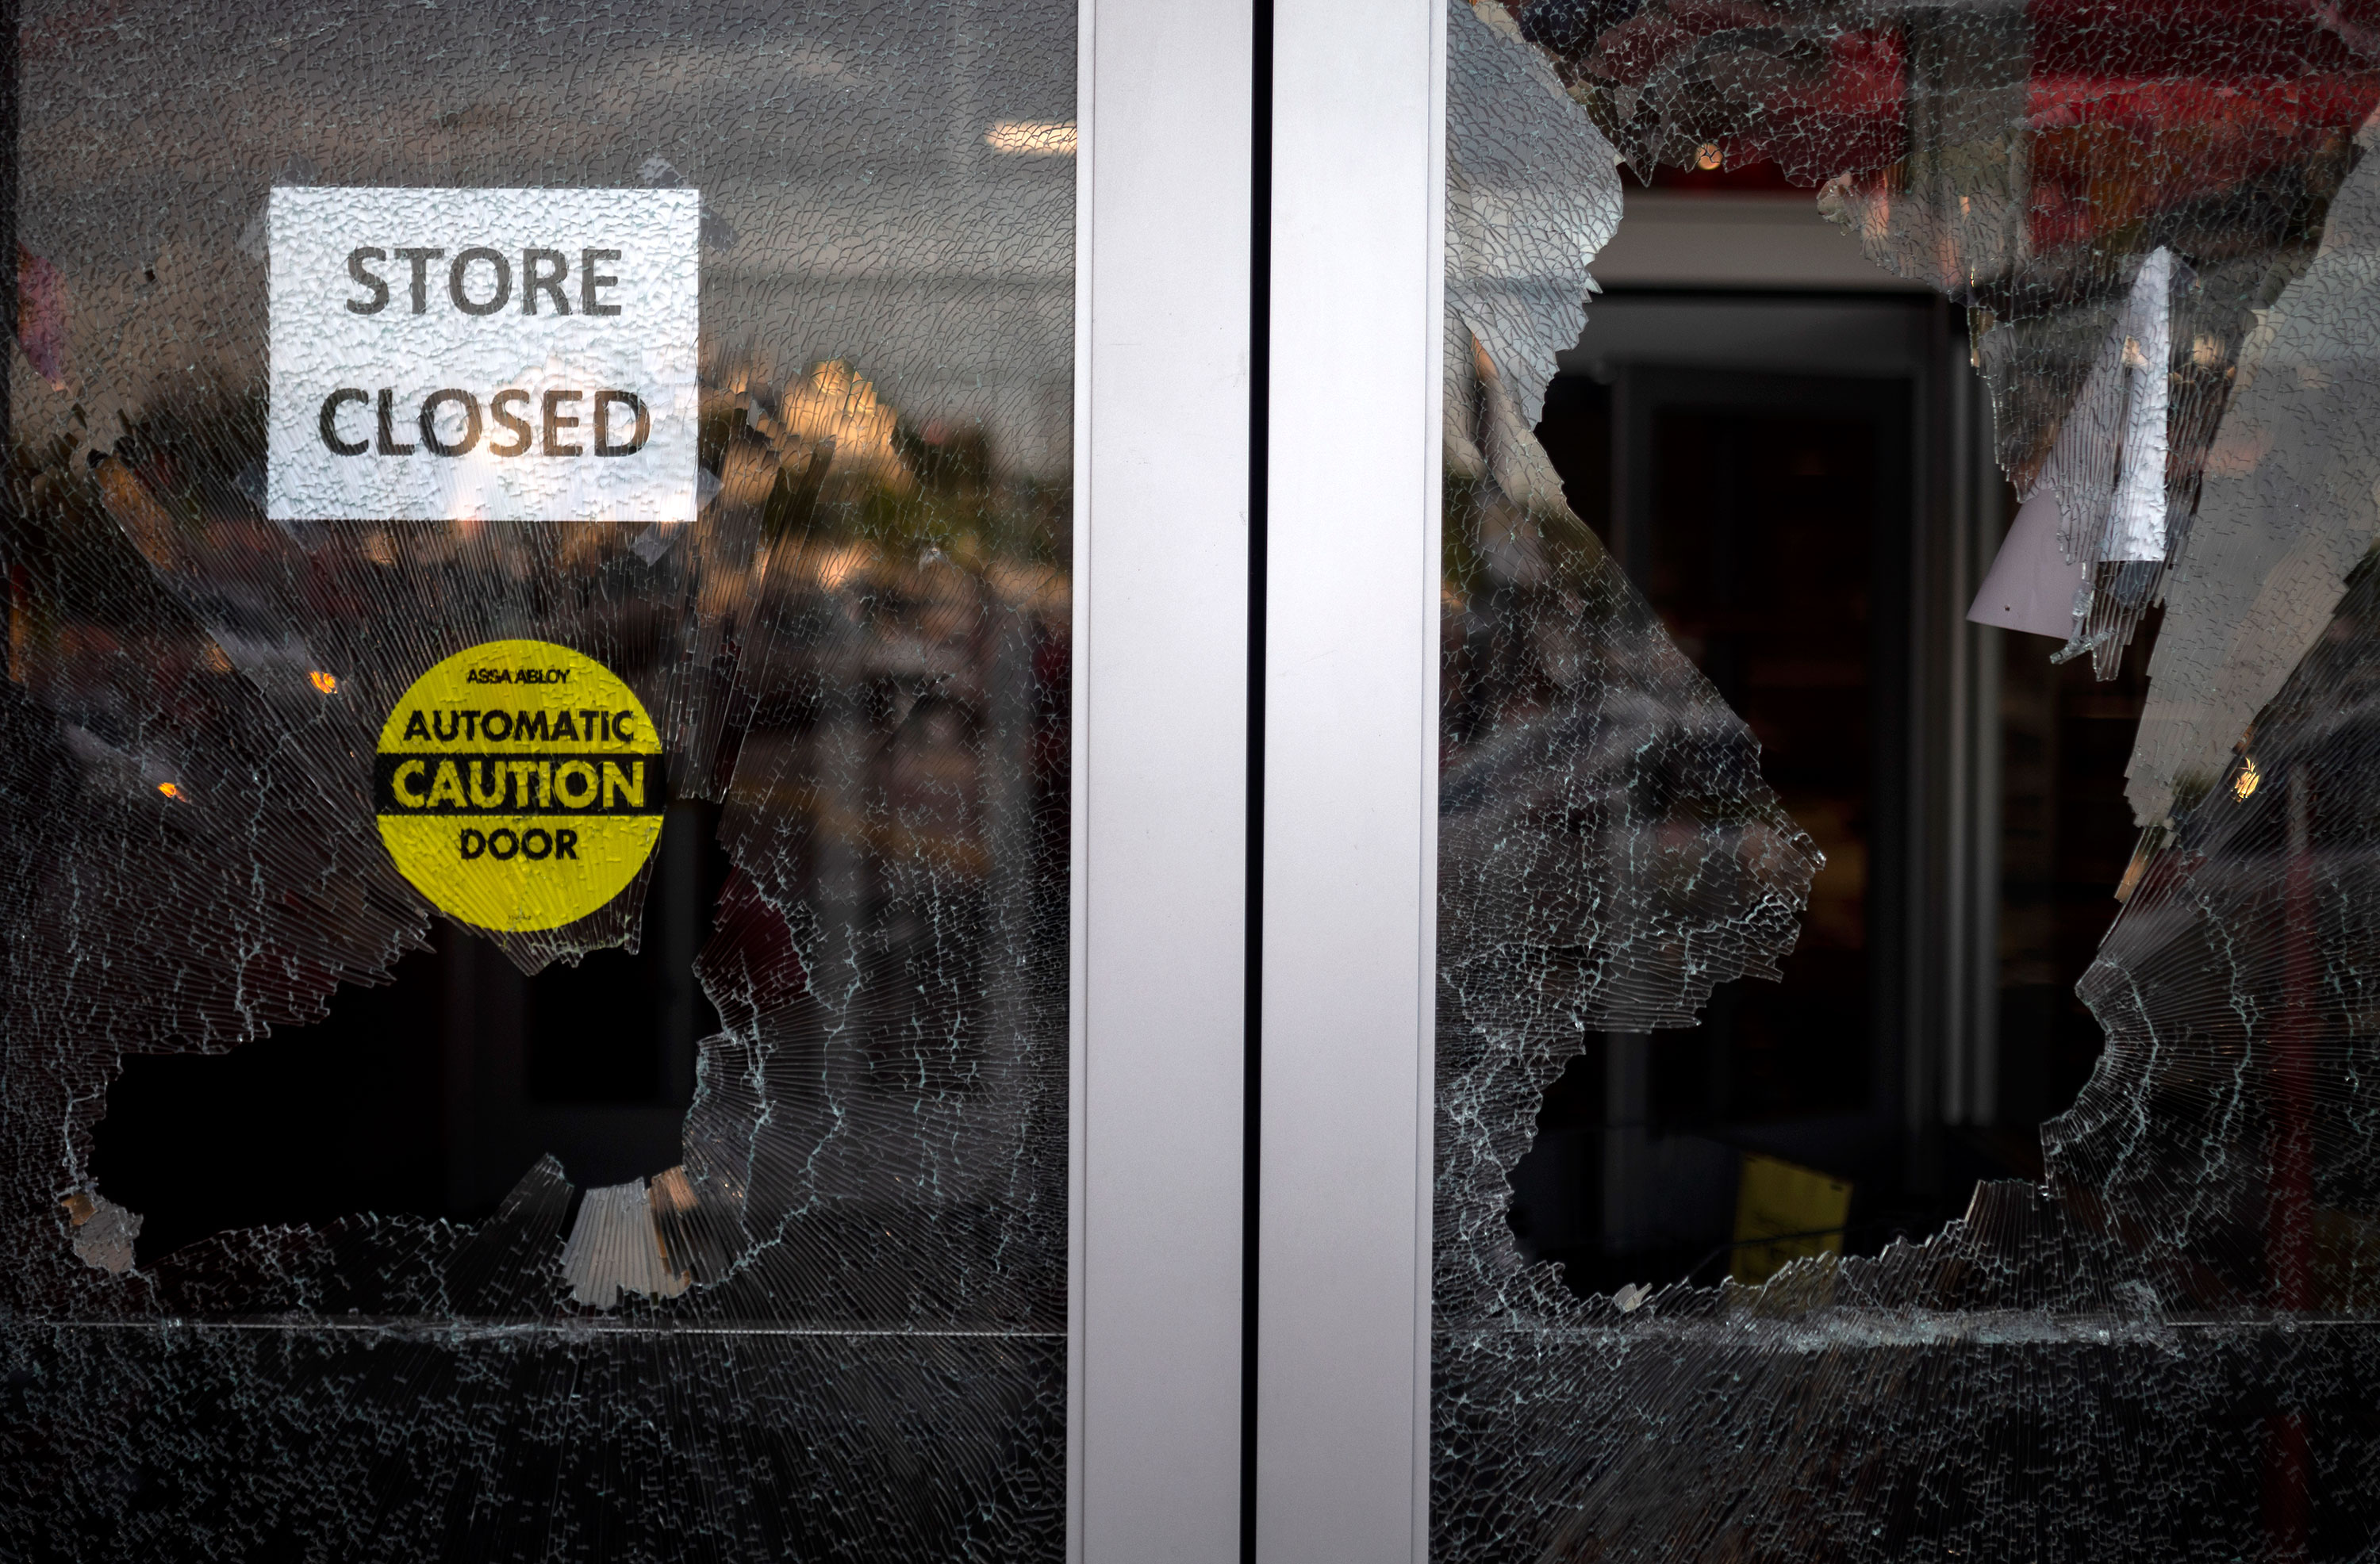 Target temporarily closing some stores, adjusting store hours amid protests